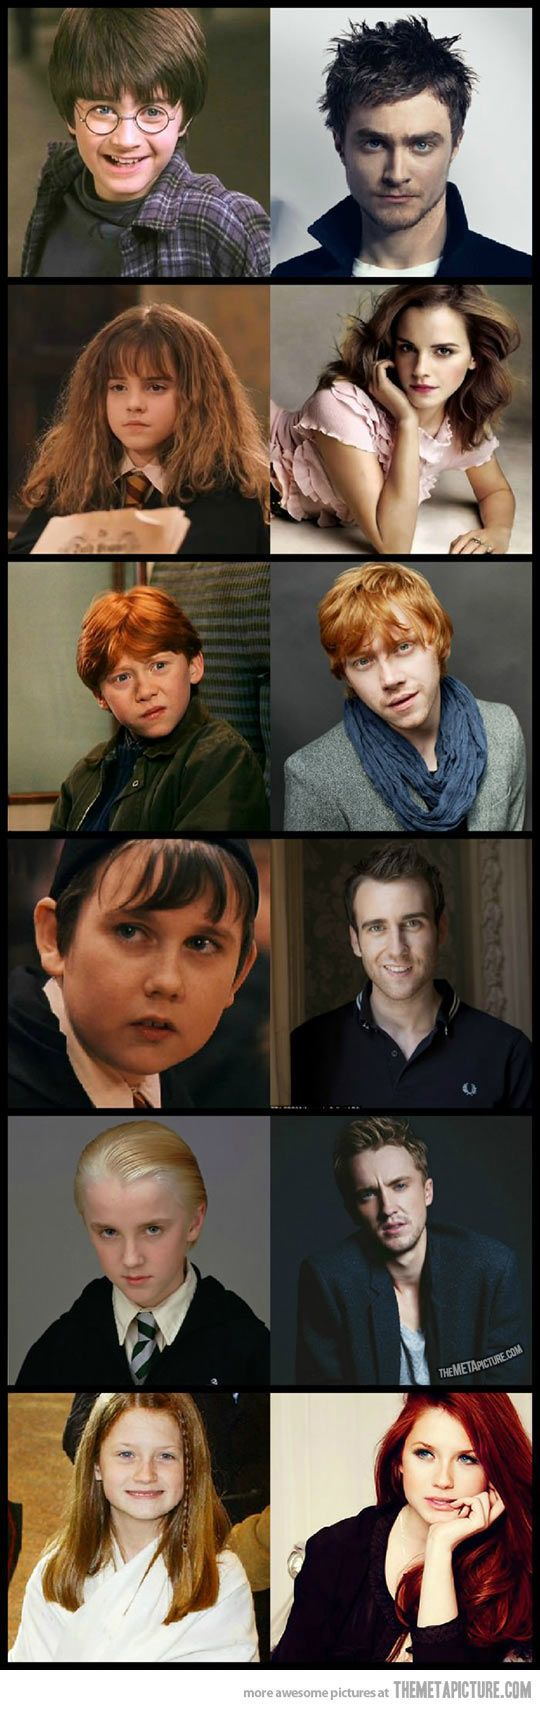 Harry Potter then and now. xD